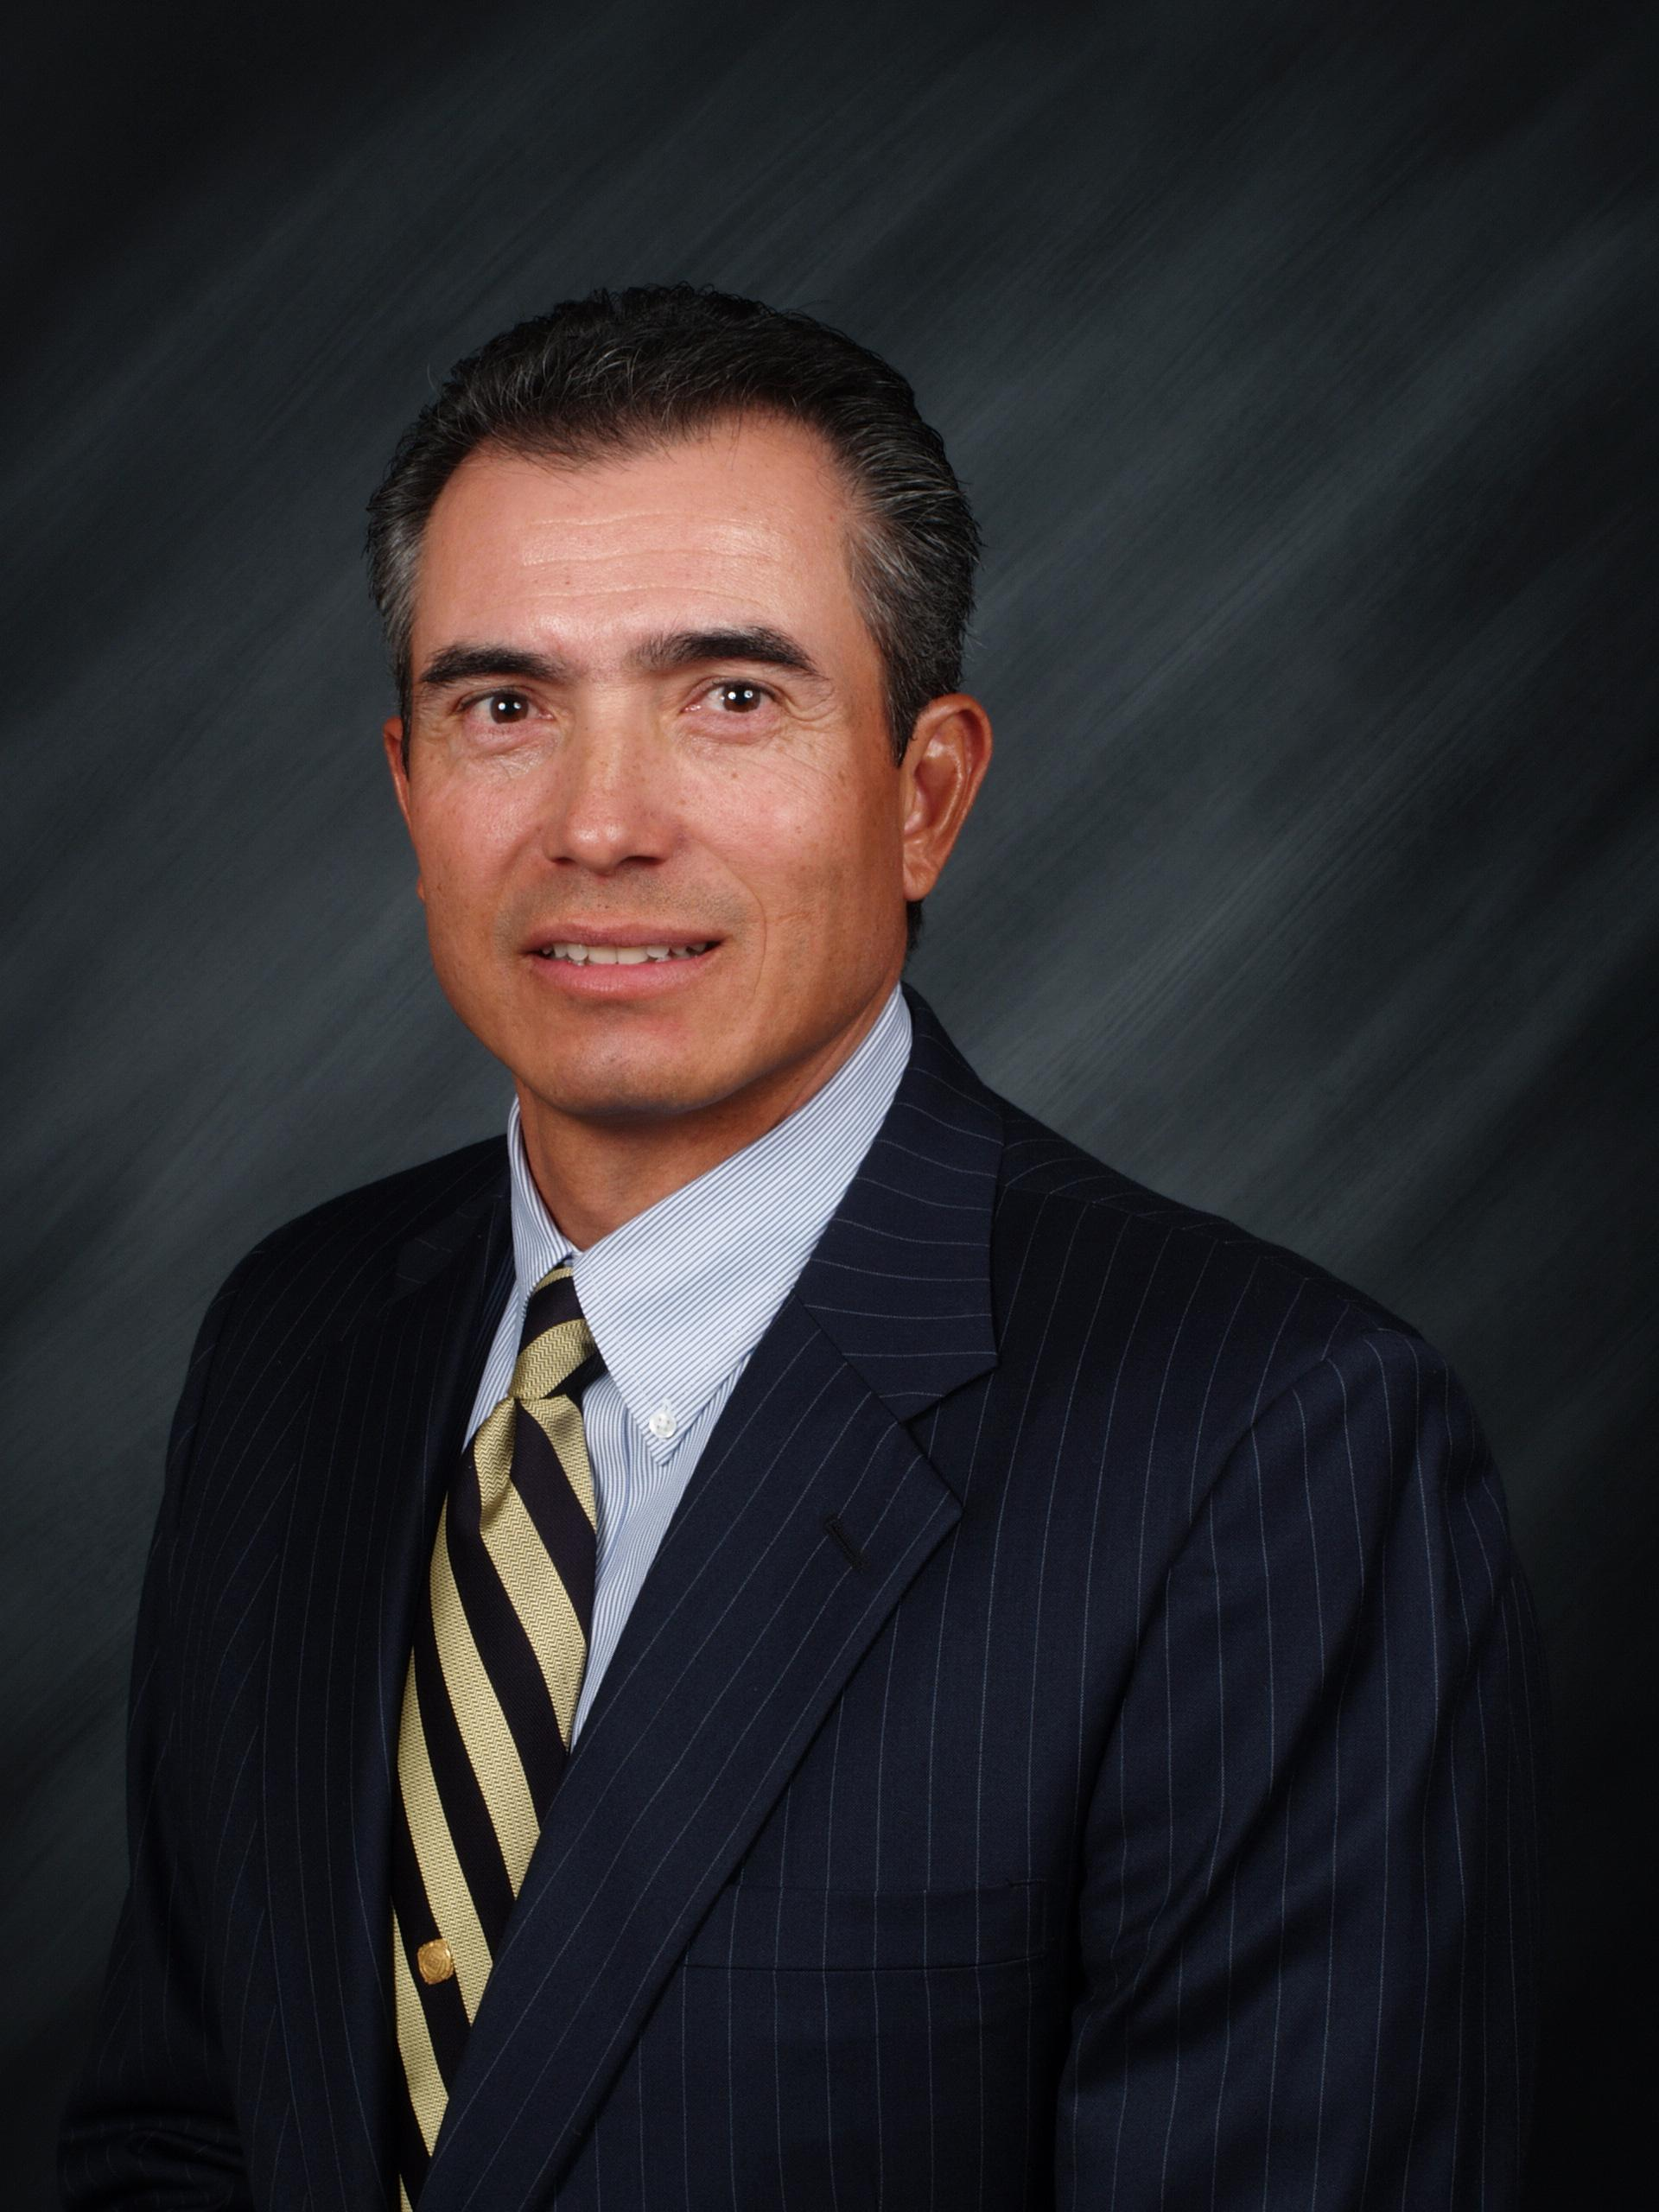 JERRY MACIAS Financial Professional & Insurance Agent